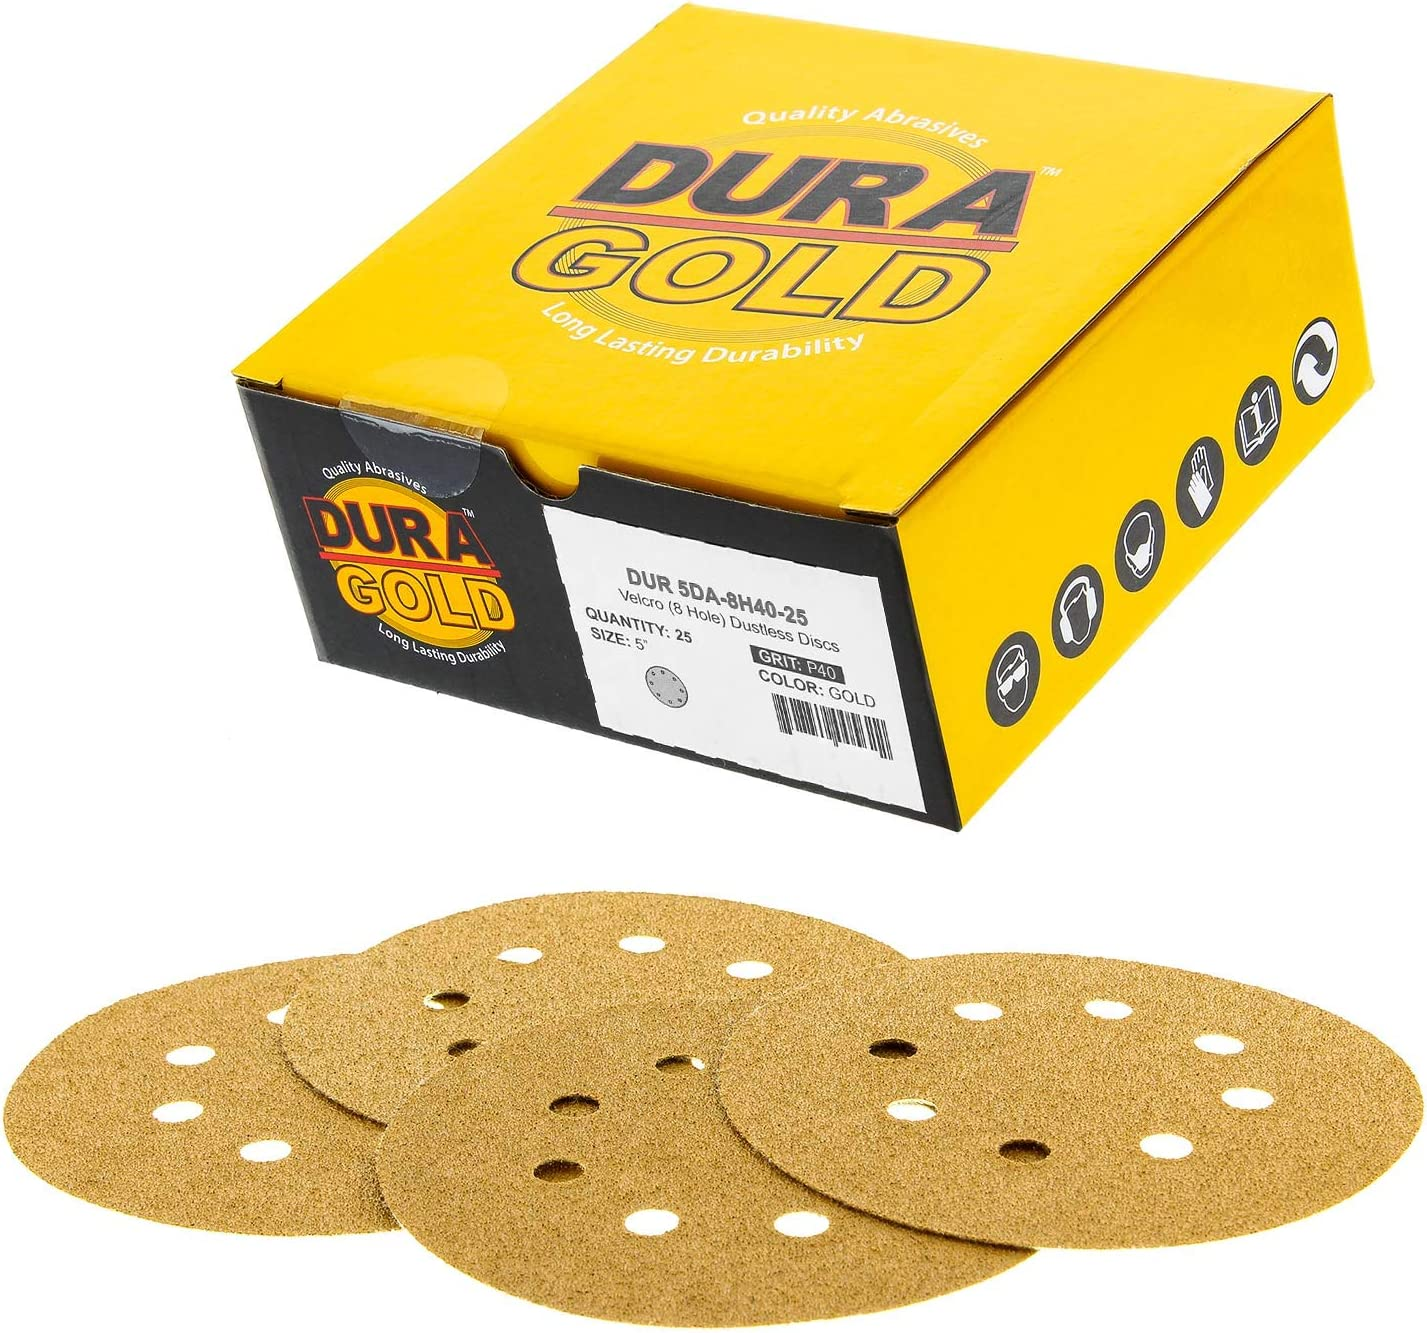 """Dura-Gold - Premium - 40 Grit - 5"""" Gold Sanding Discs - 8-Hole Dustless Hook and Loop for DA Sander - Box of 25 Finishing Sandpaper Discs for Woodworking or Automotive"""